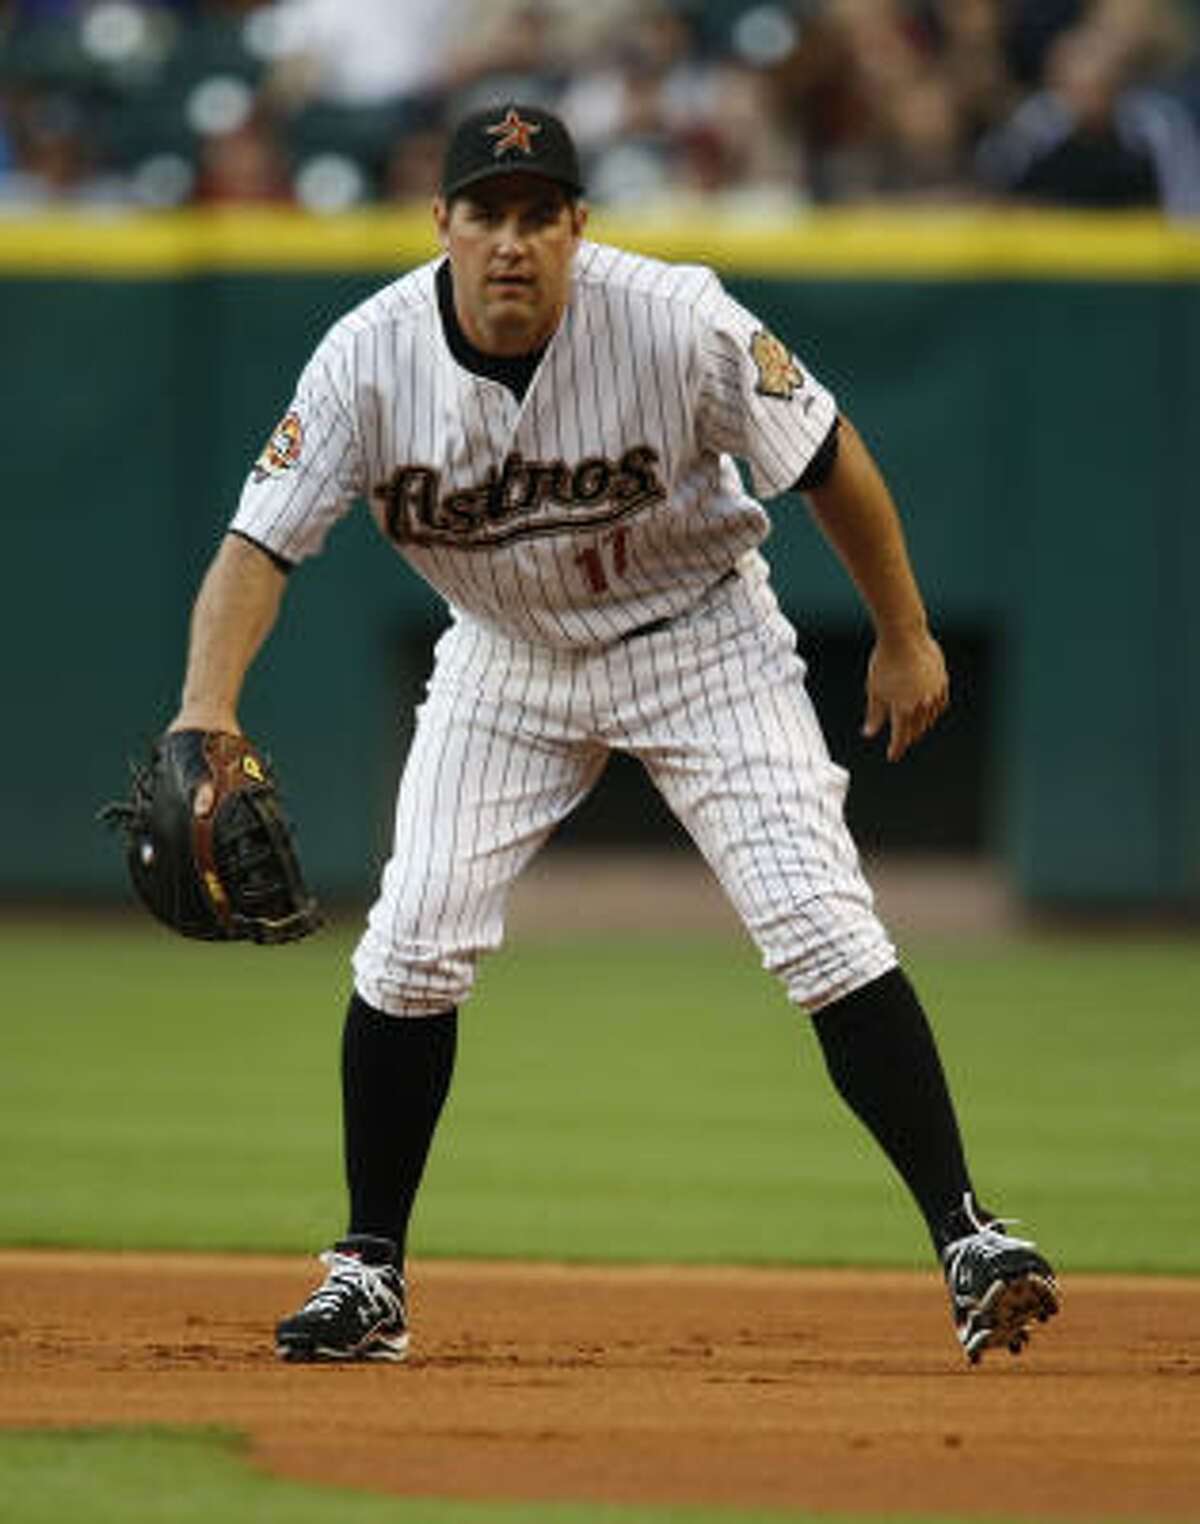 April 20: Astros 7, Marlins 5 Astros first baseman Lance Berkman plays in his first game this season after coming off the disabled list.